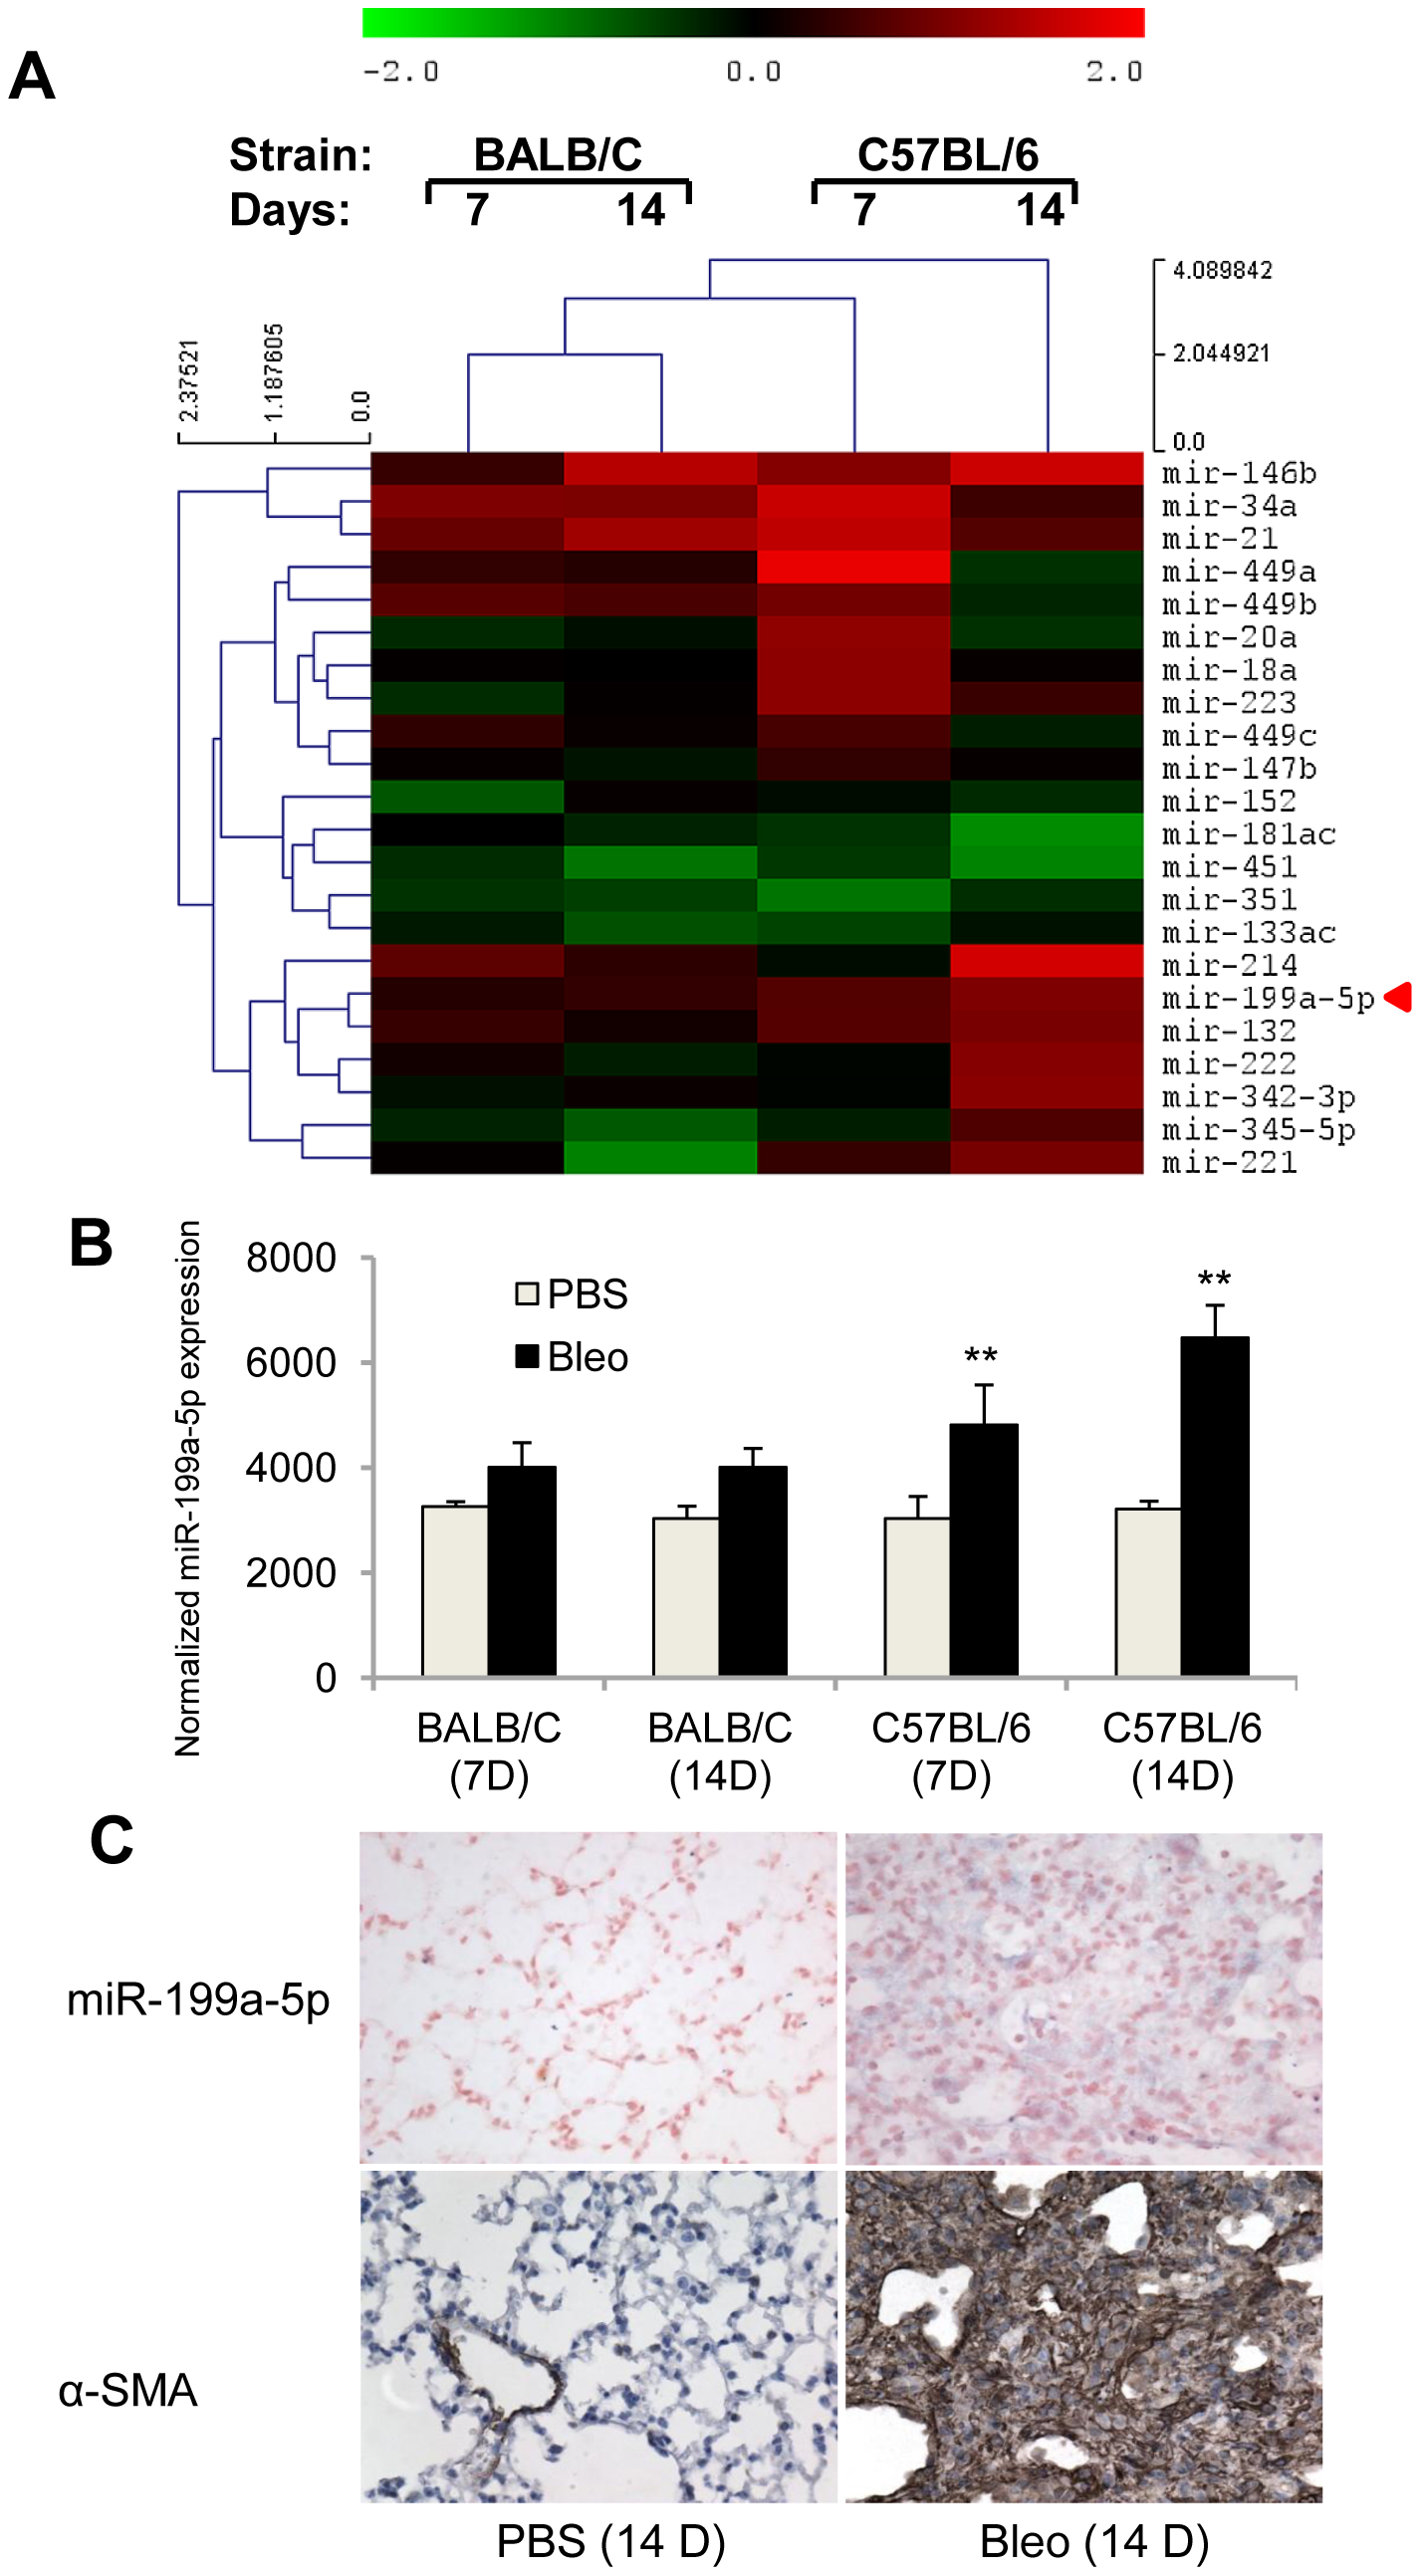 miR-199a-5p expression during bleomycin induced lung fibrosis.